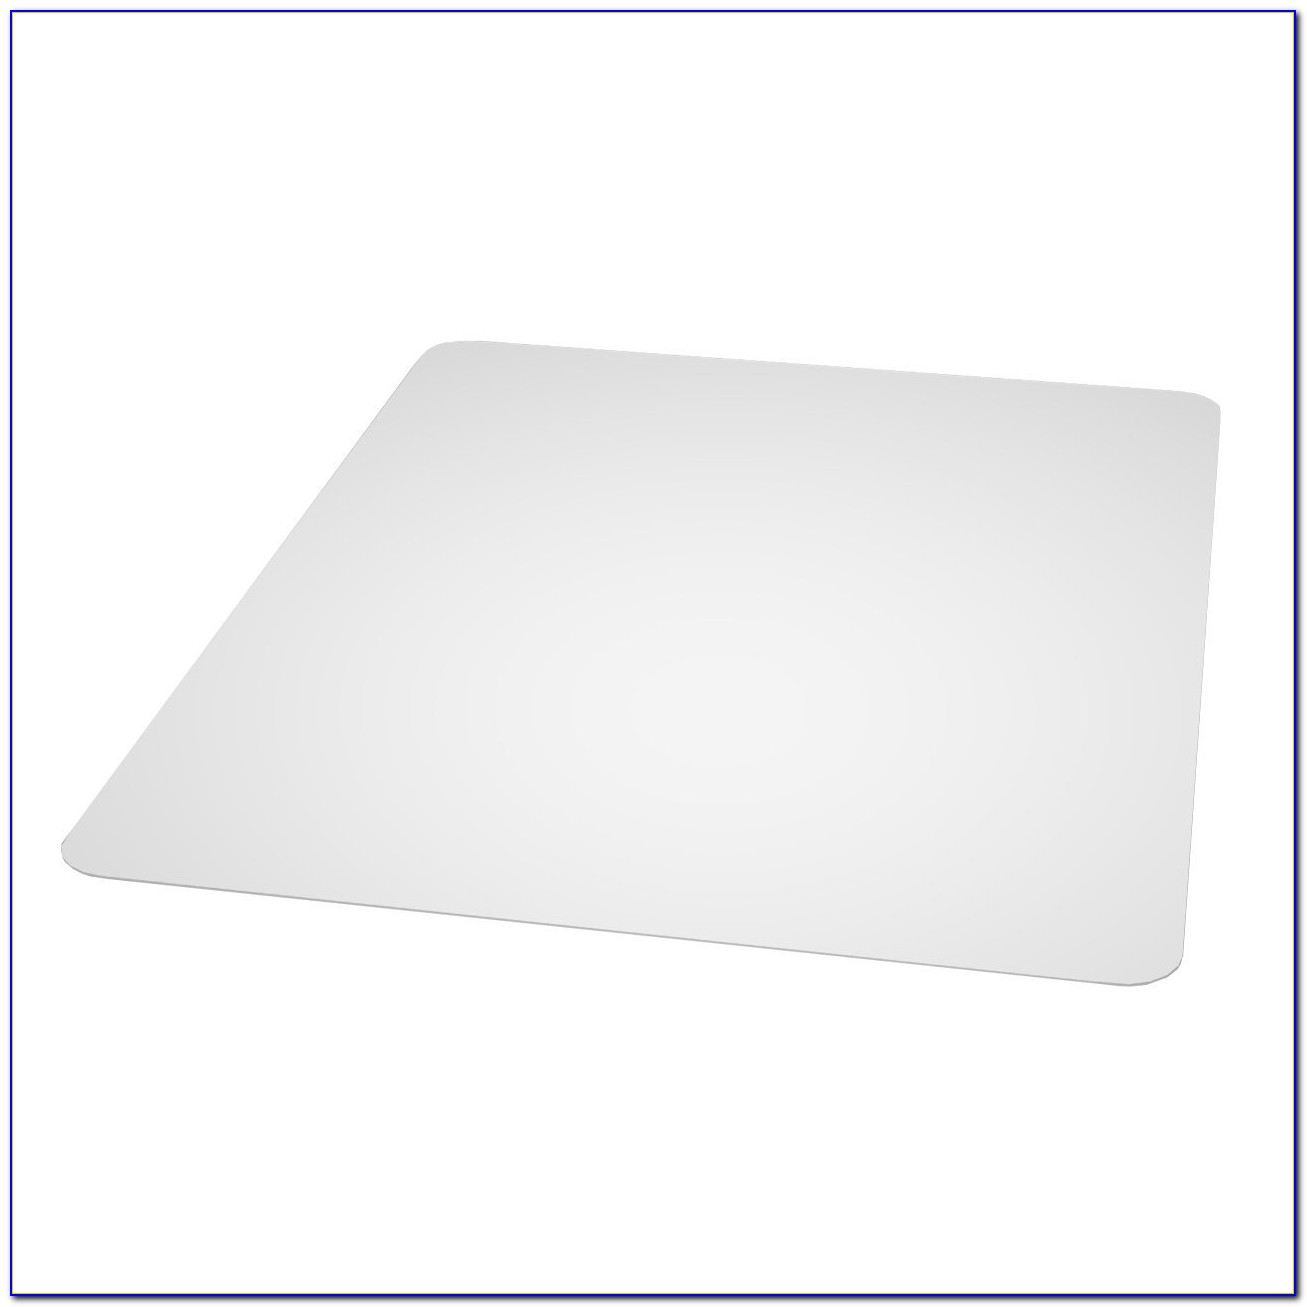 Clear Desk Protector Mat